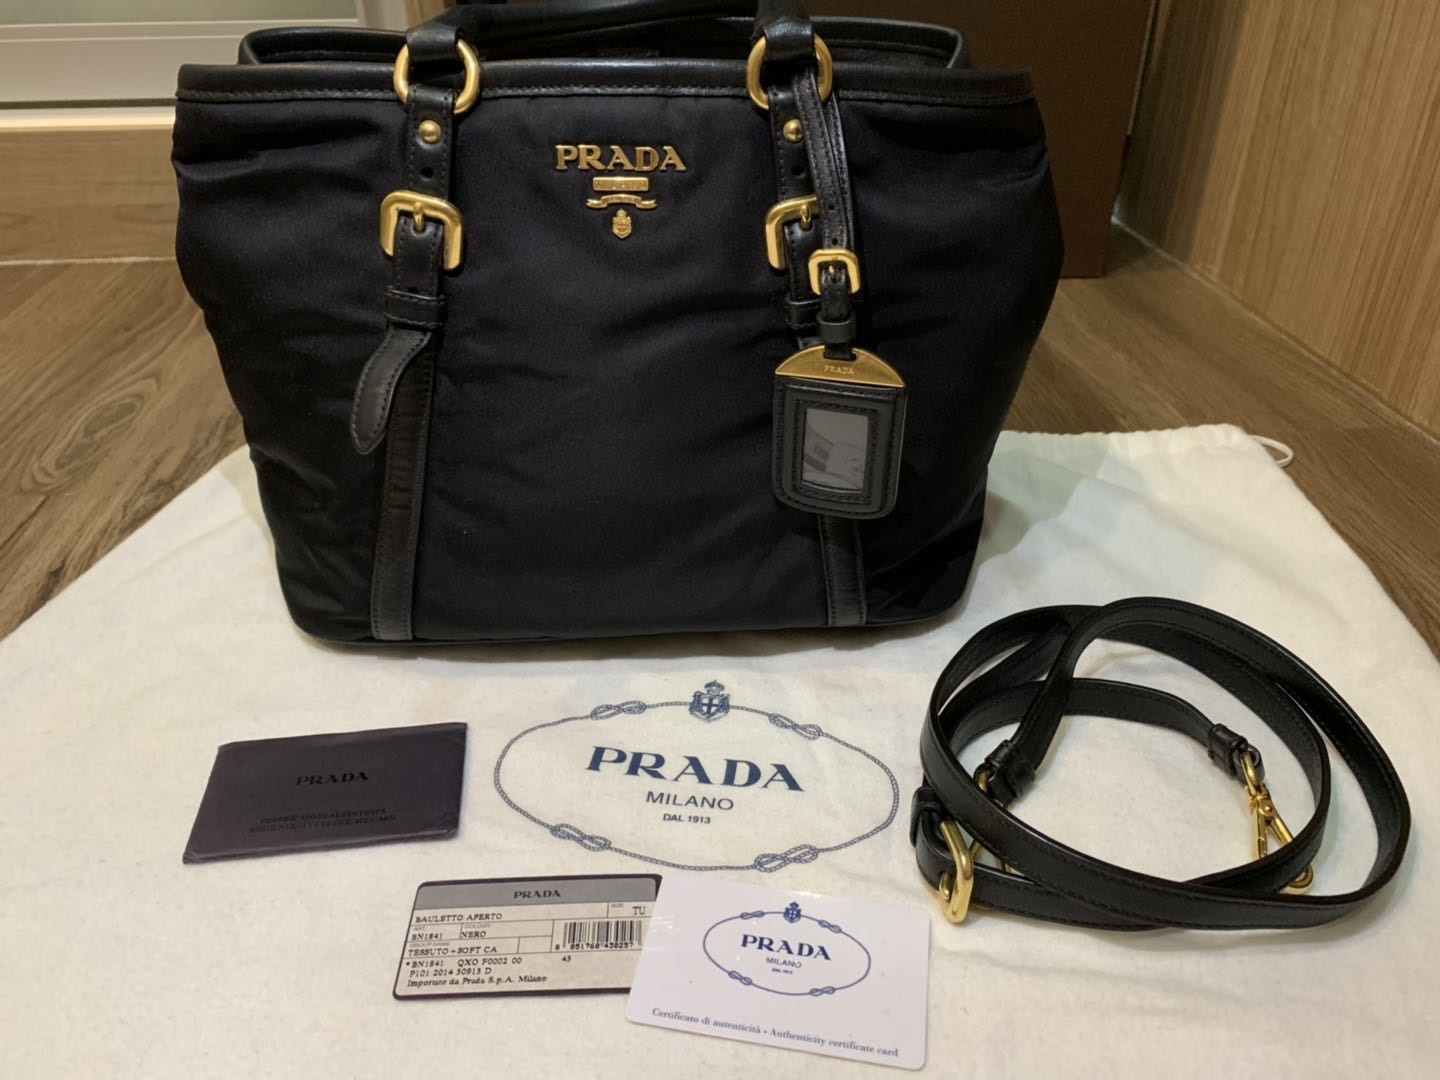 efb1908dbbb1 Prada BN1841 Gold Condition : 9/10 Colour/Material : black with gold  hardware Come with dustbag and Authencity card Whatapps me for more details.